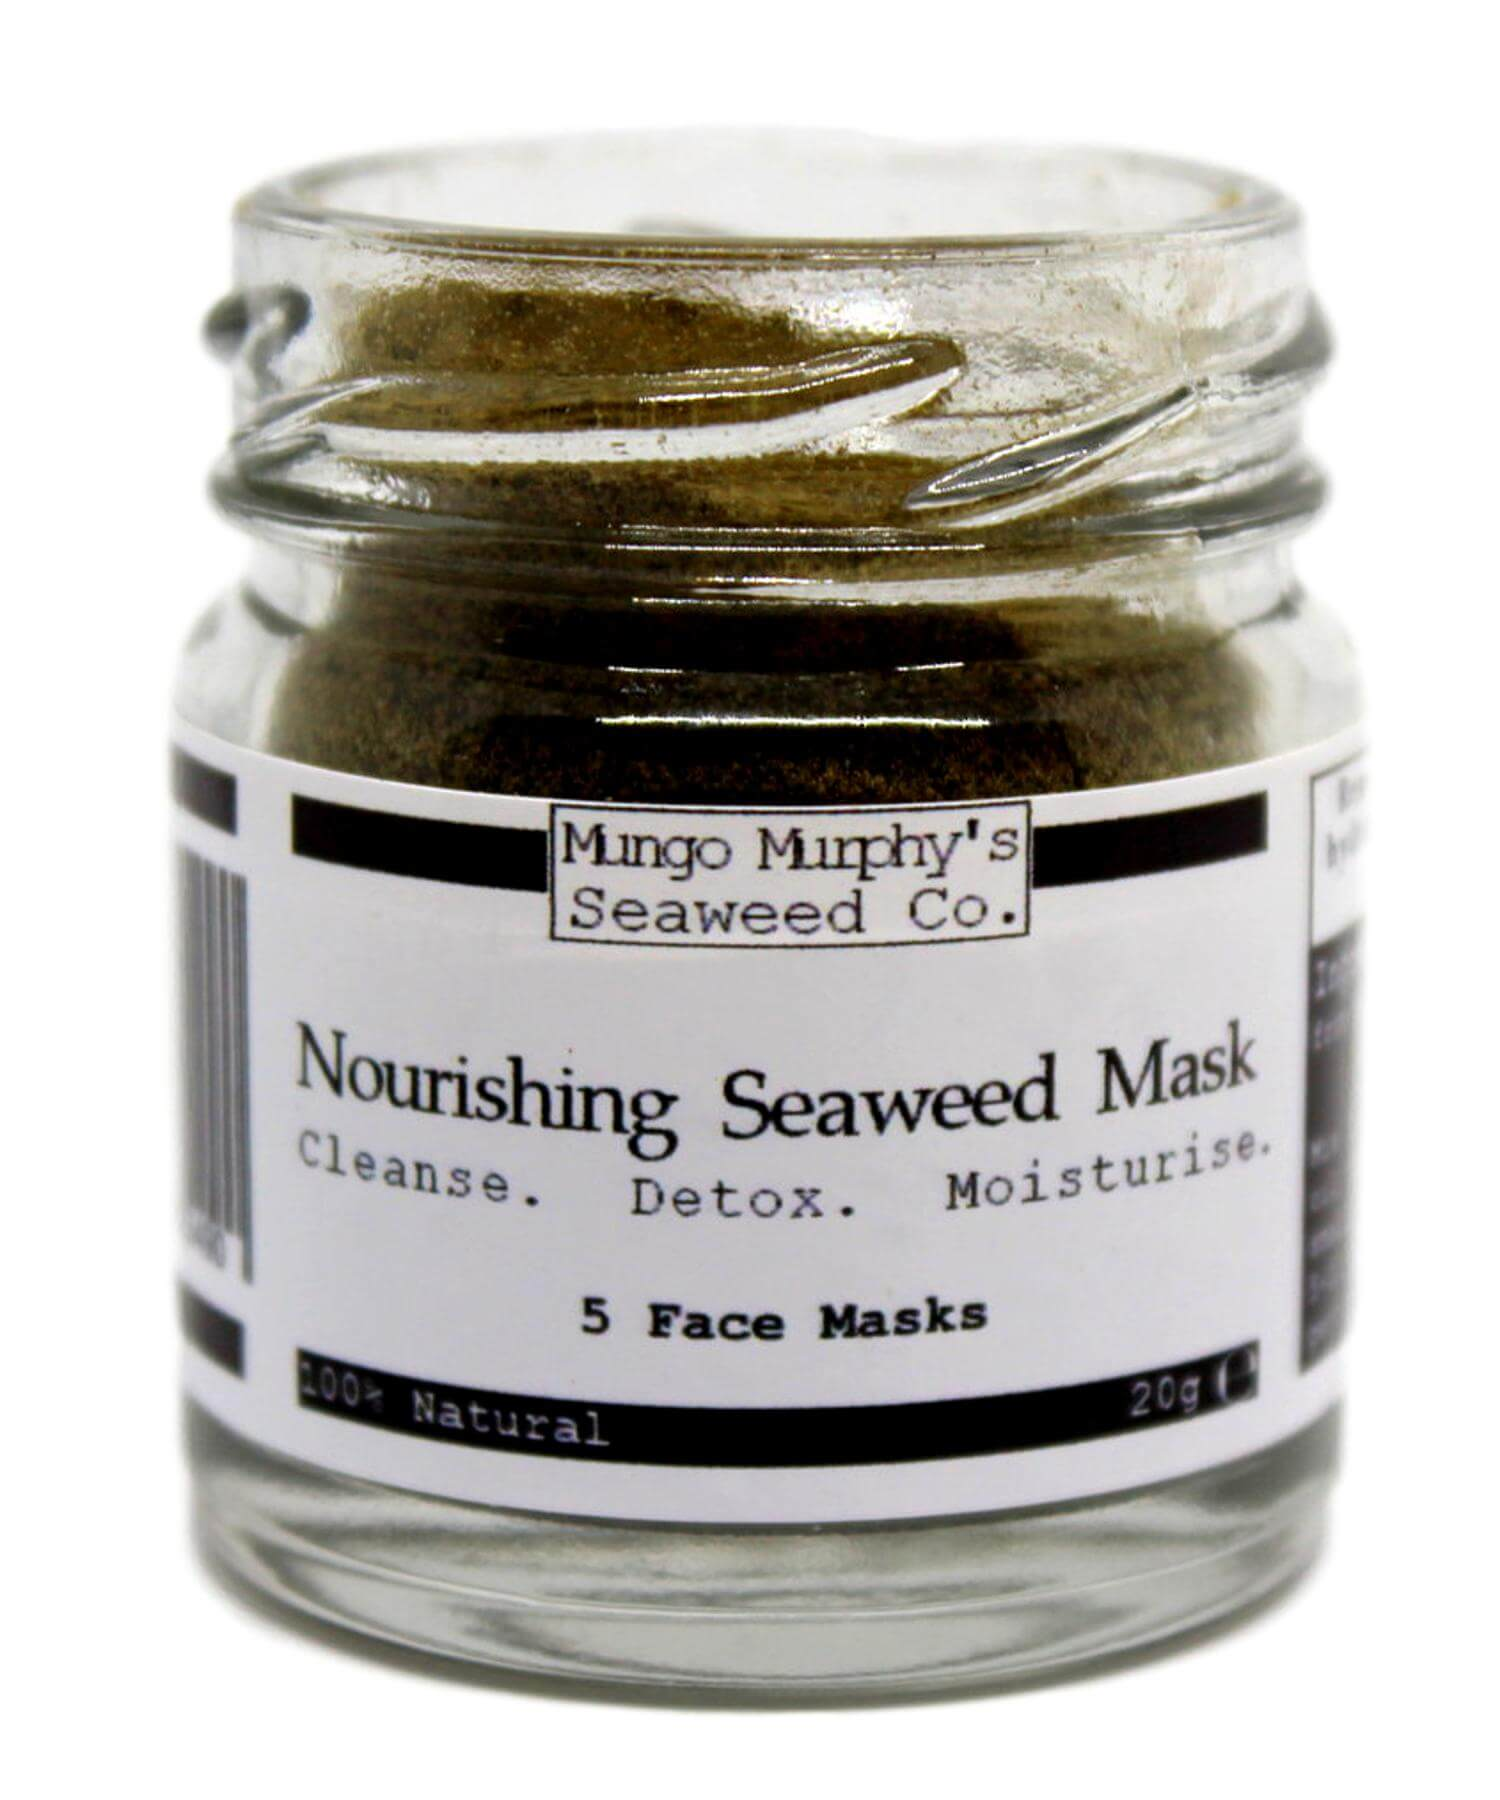 Nourishing Seaweed Mask - [Mungo Murphy's Seaweed Co.] - Skincare & Beauty - Irish Gifts